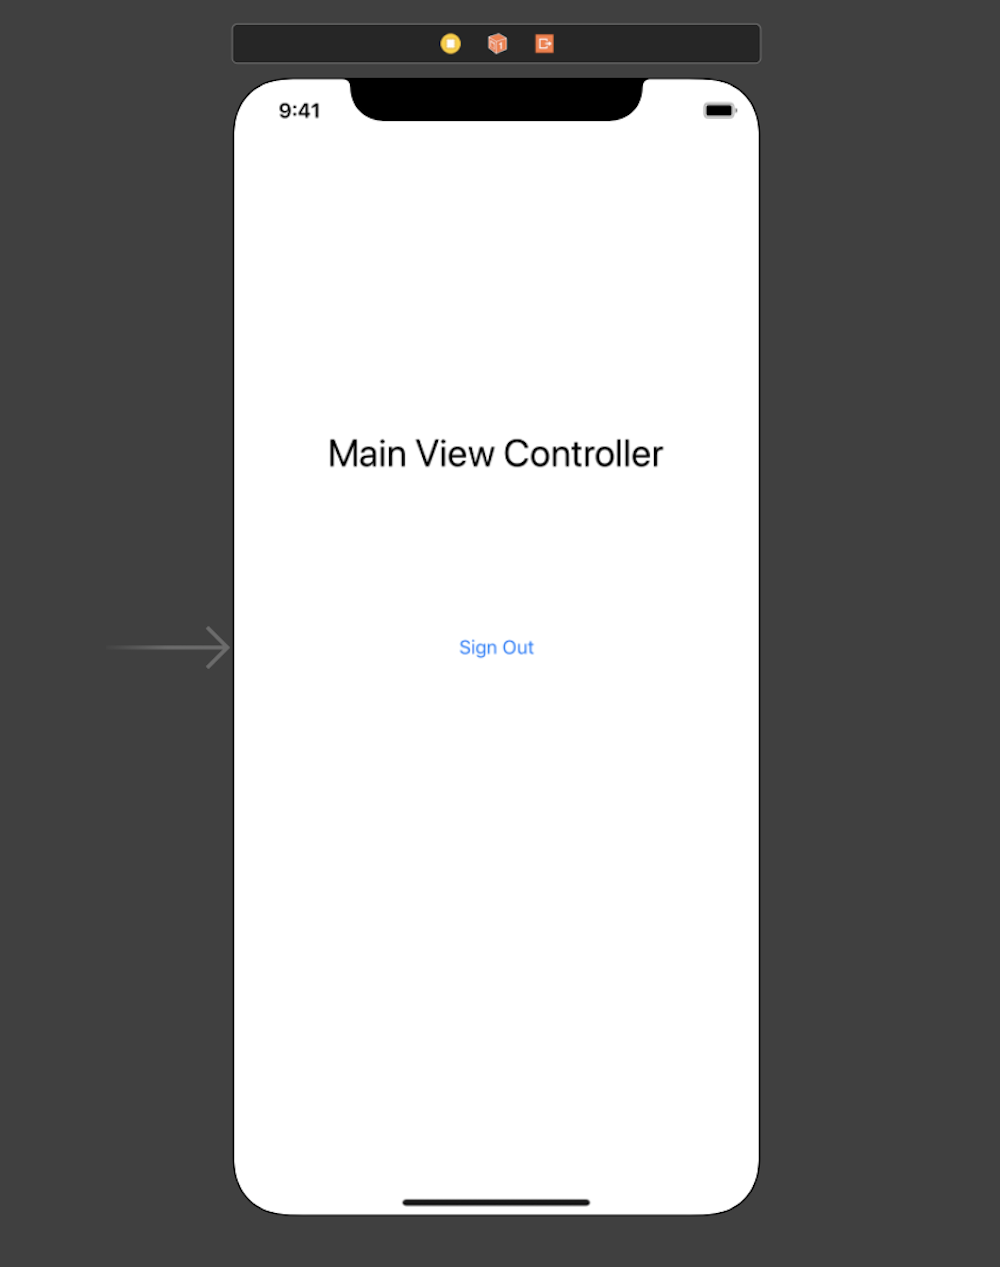 Main View Controller in Interface Builder